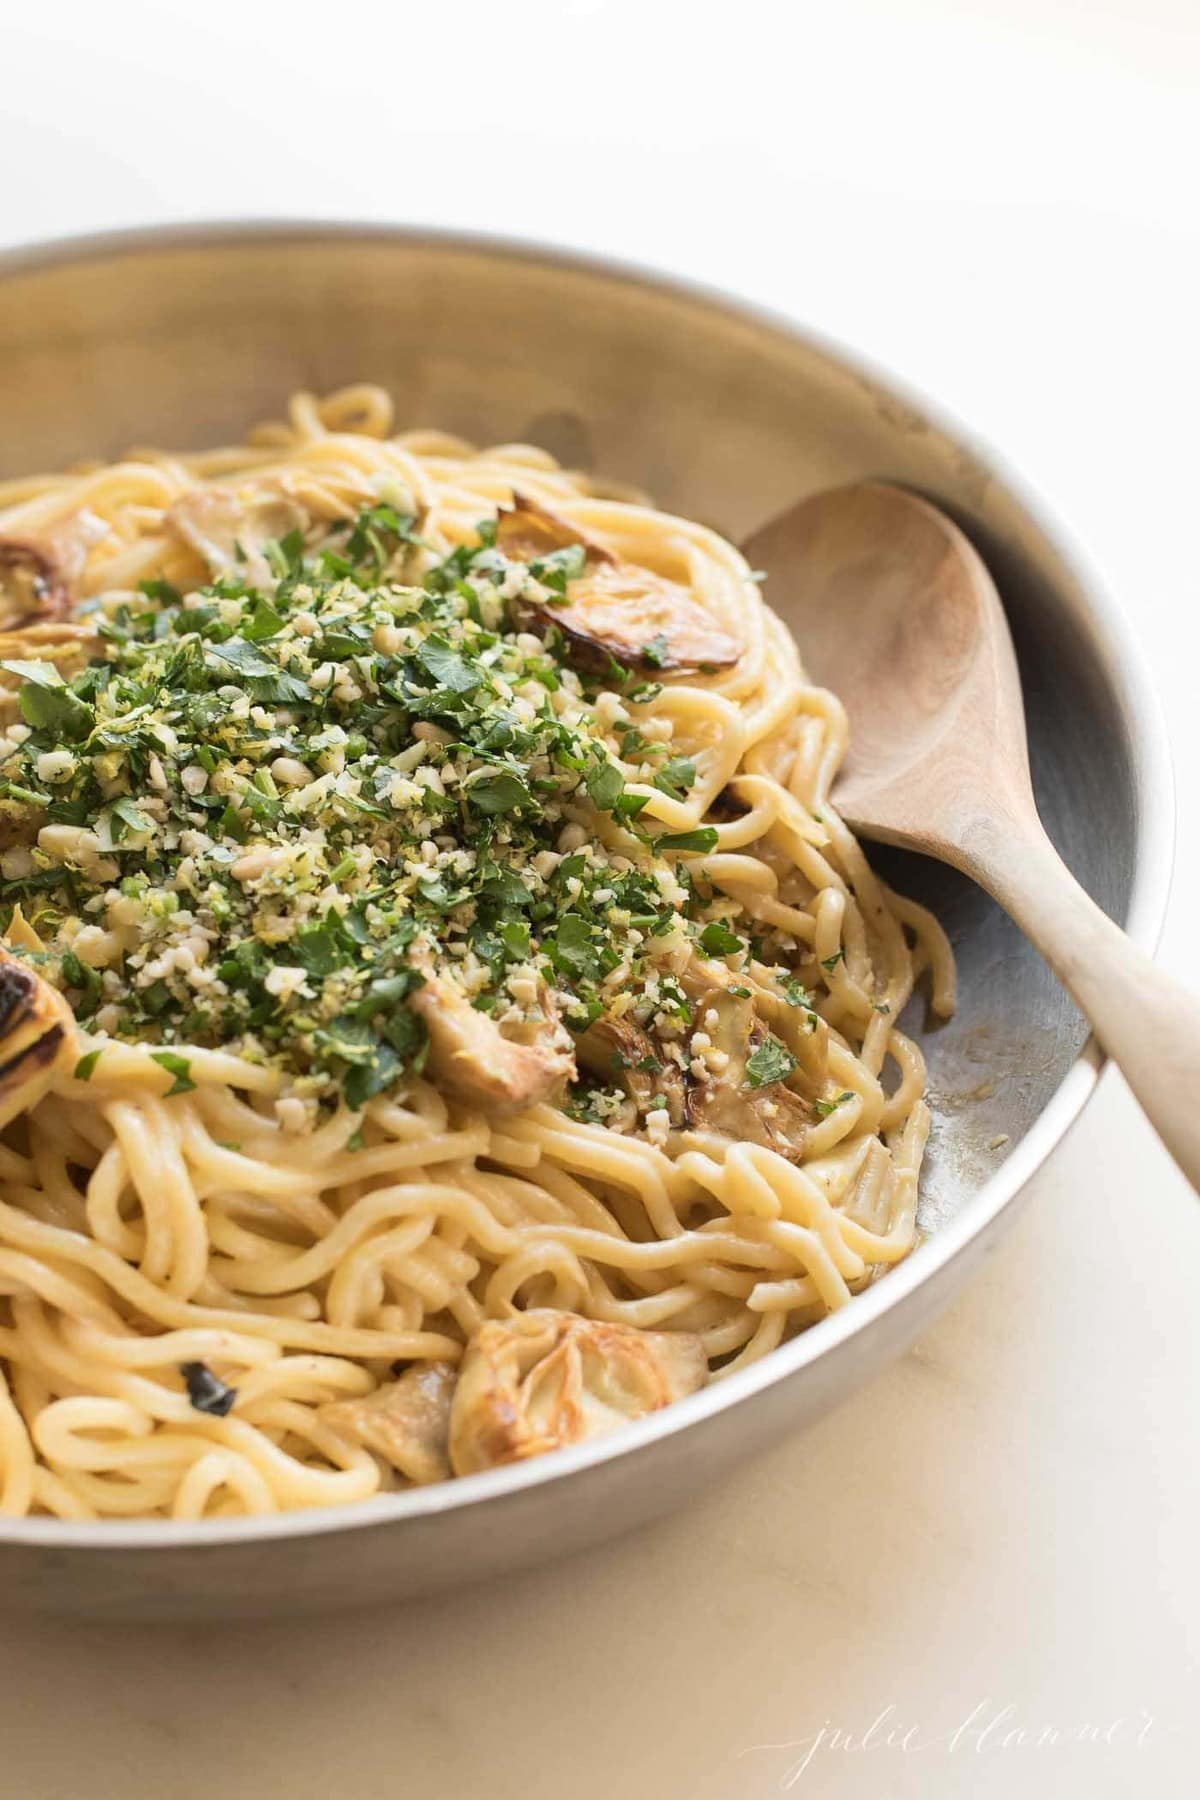 spaghetti in a skillet with artichokes and gremolata with a wooden spoon